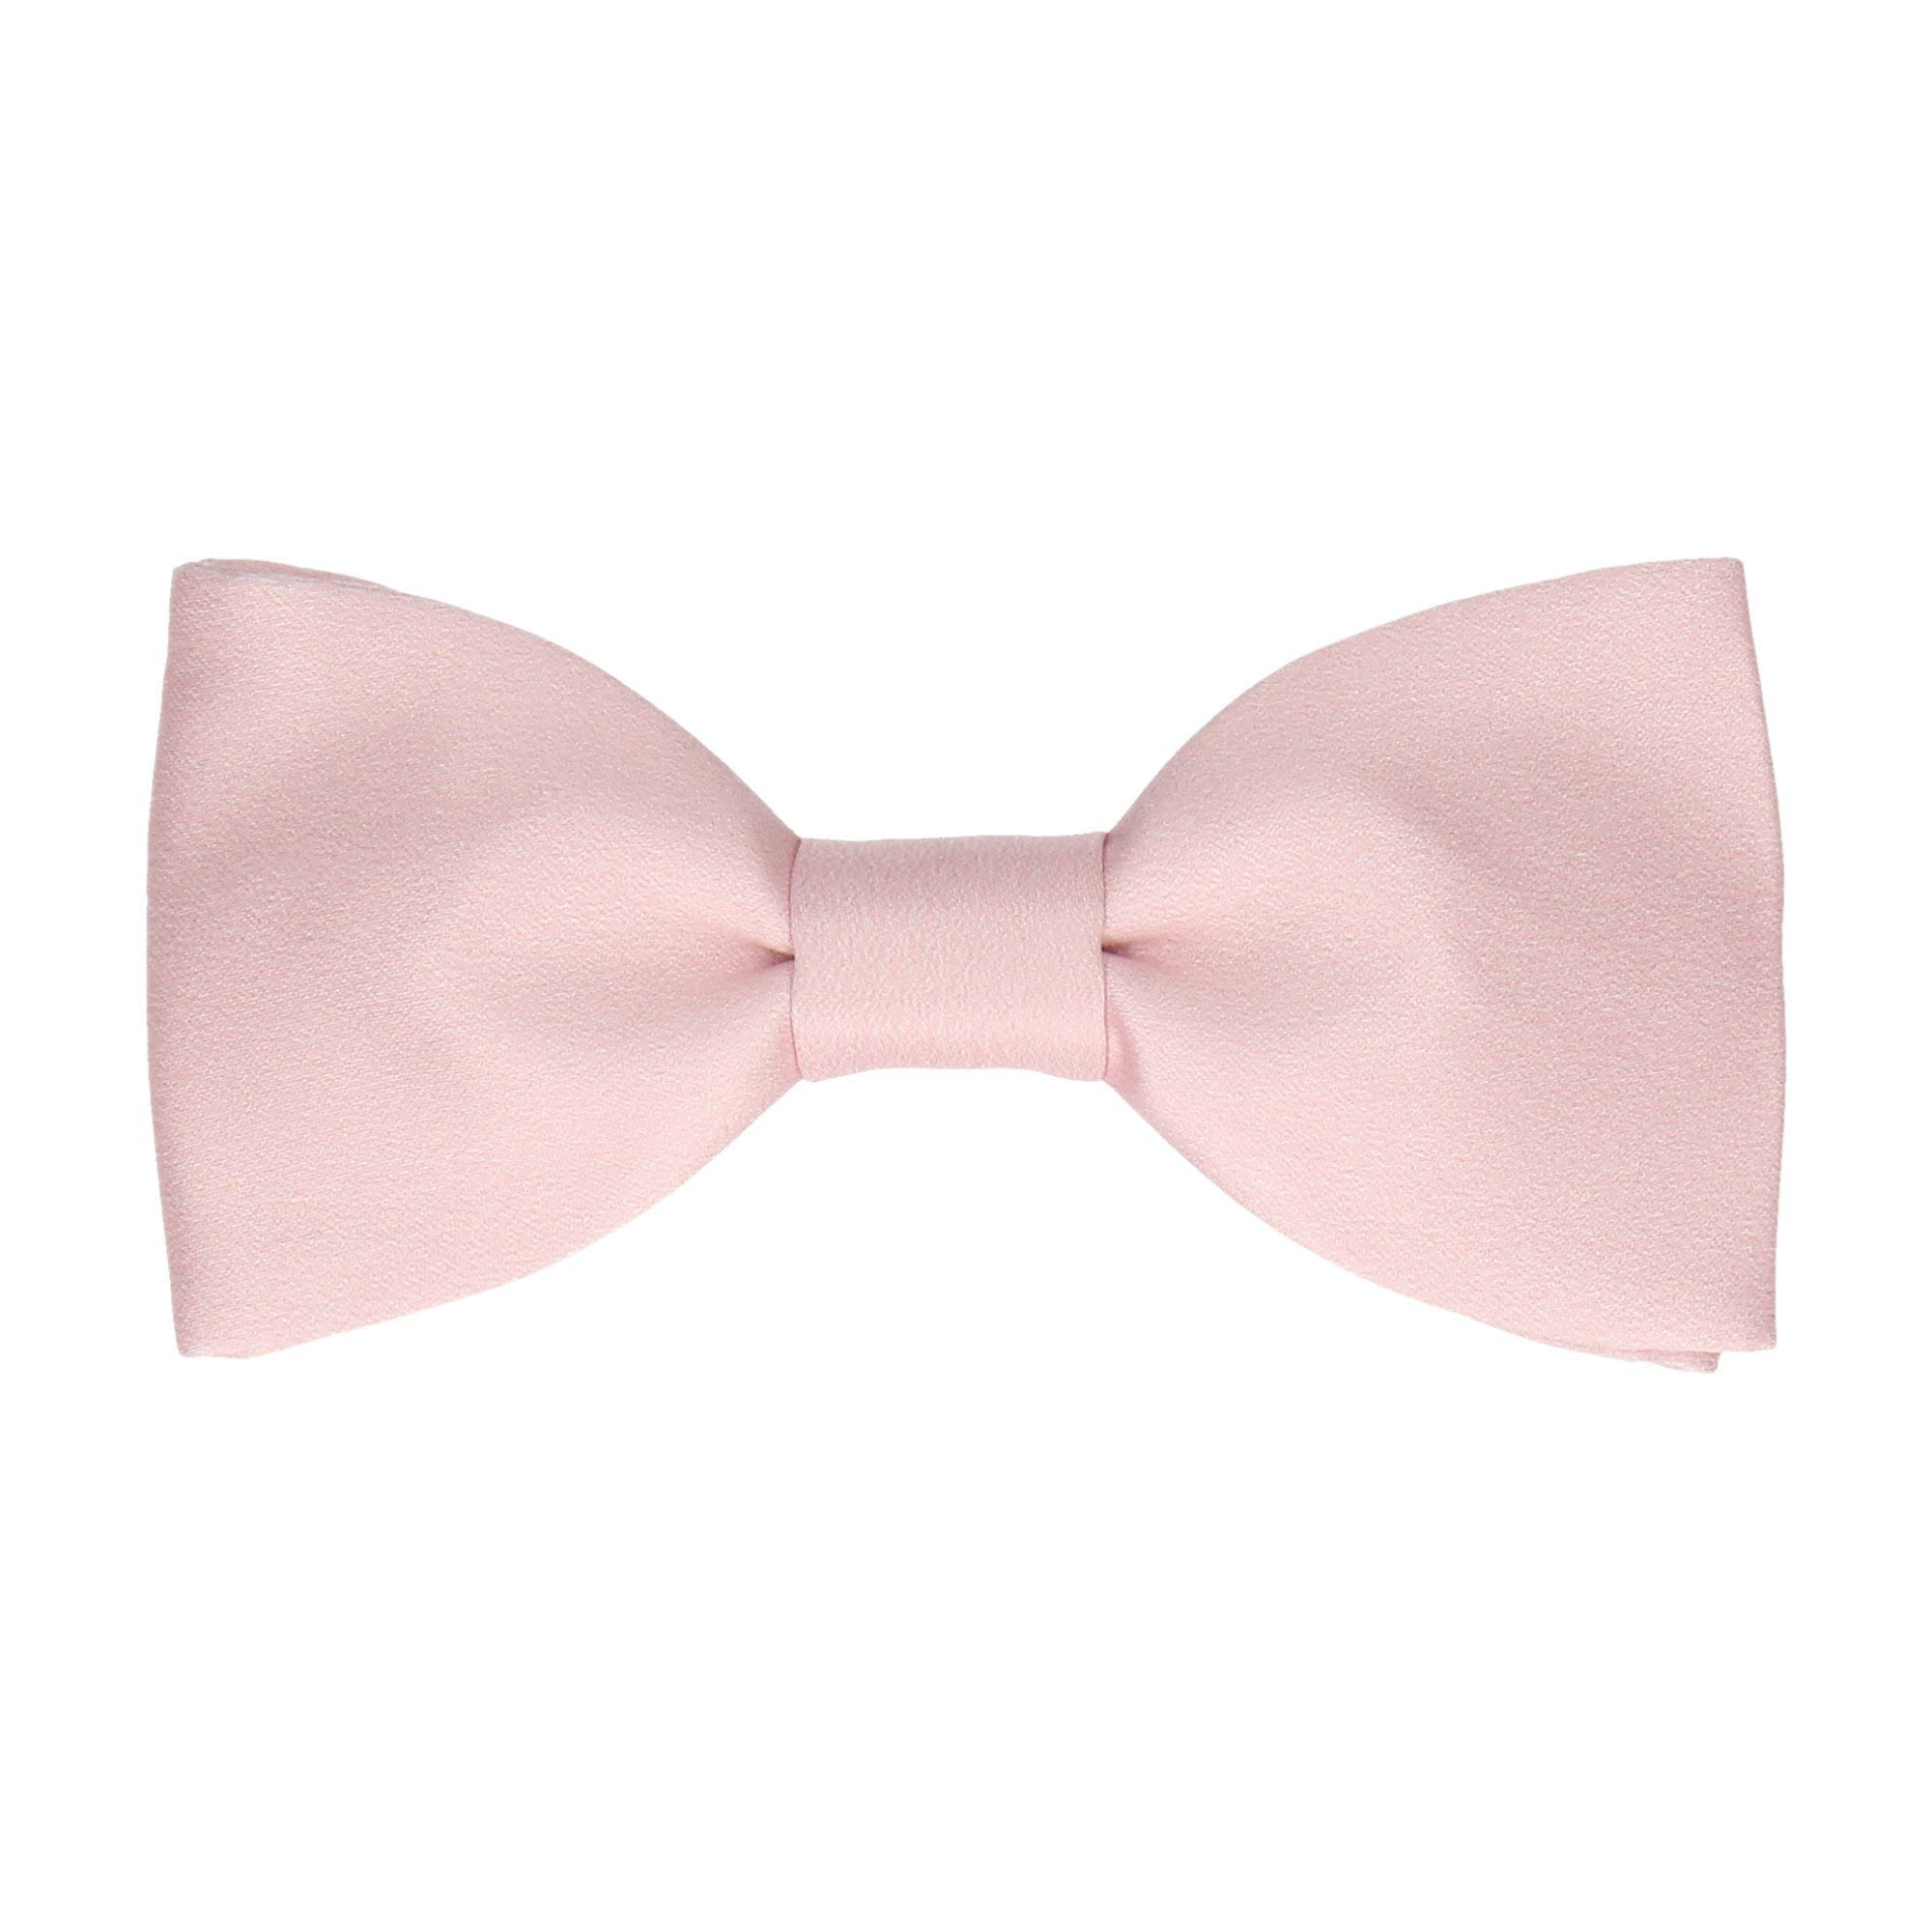 Classic in Soft Blush Bow Tie